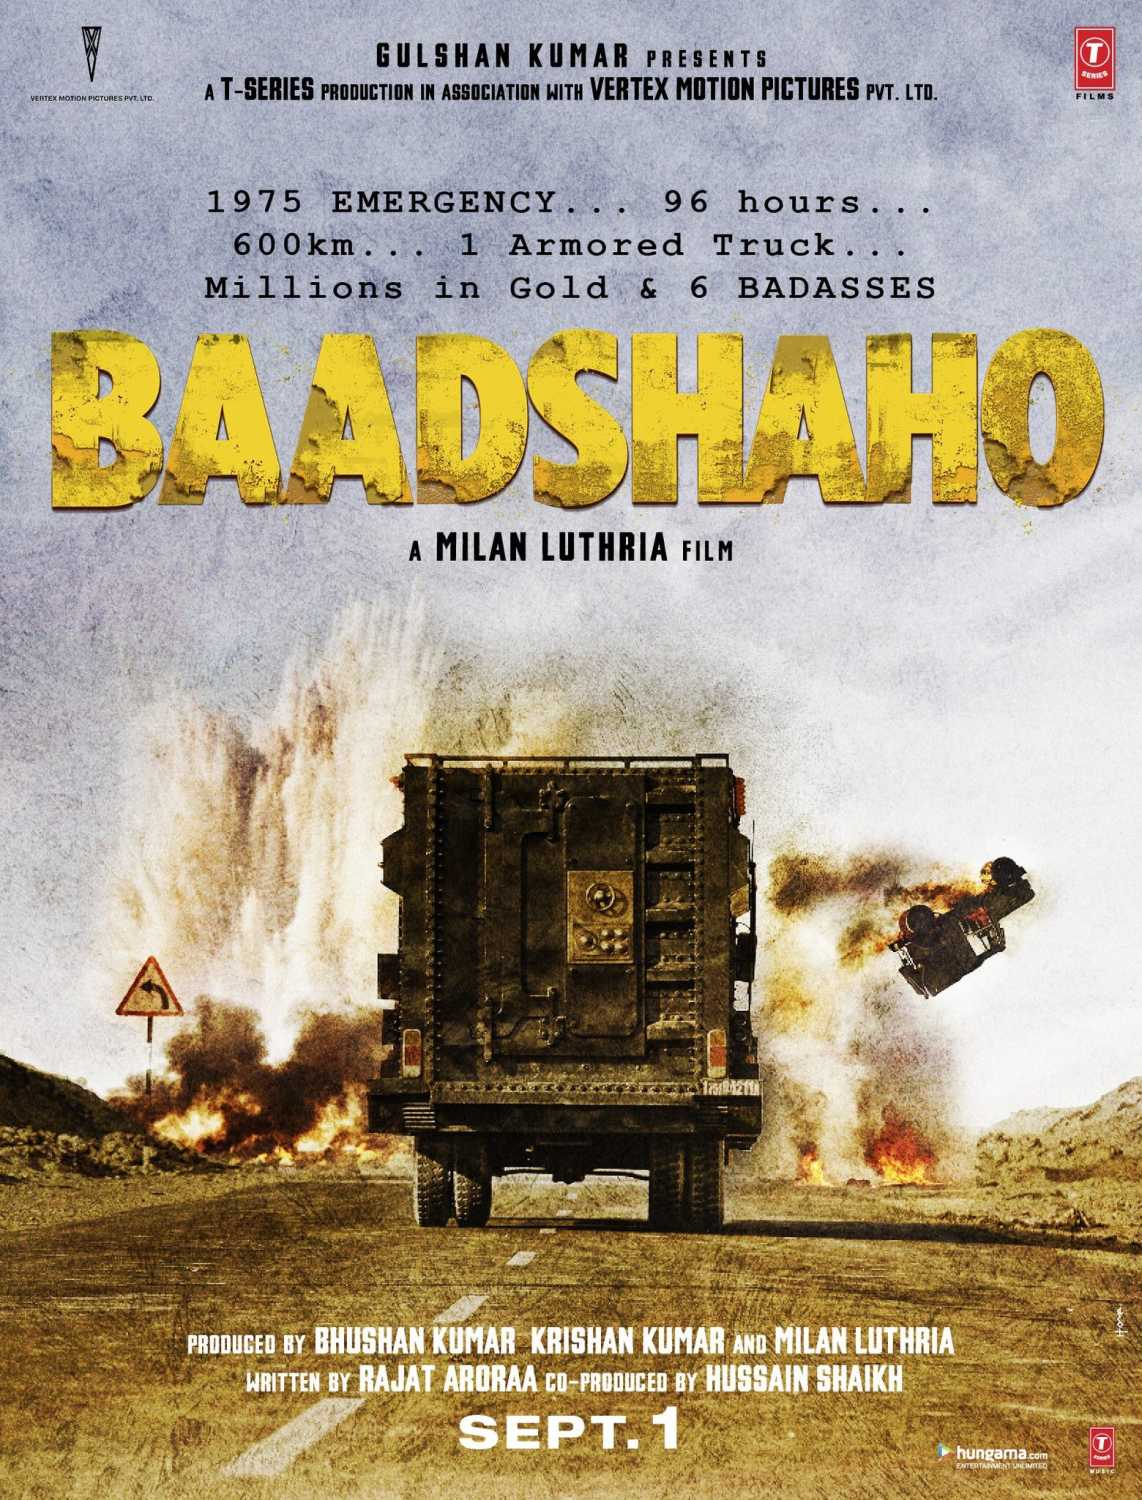 Baadshaho poster: Set during Emergency, Ajay Devgn film